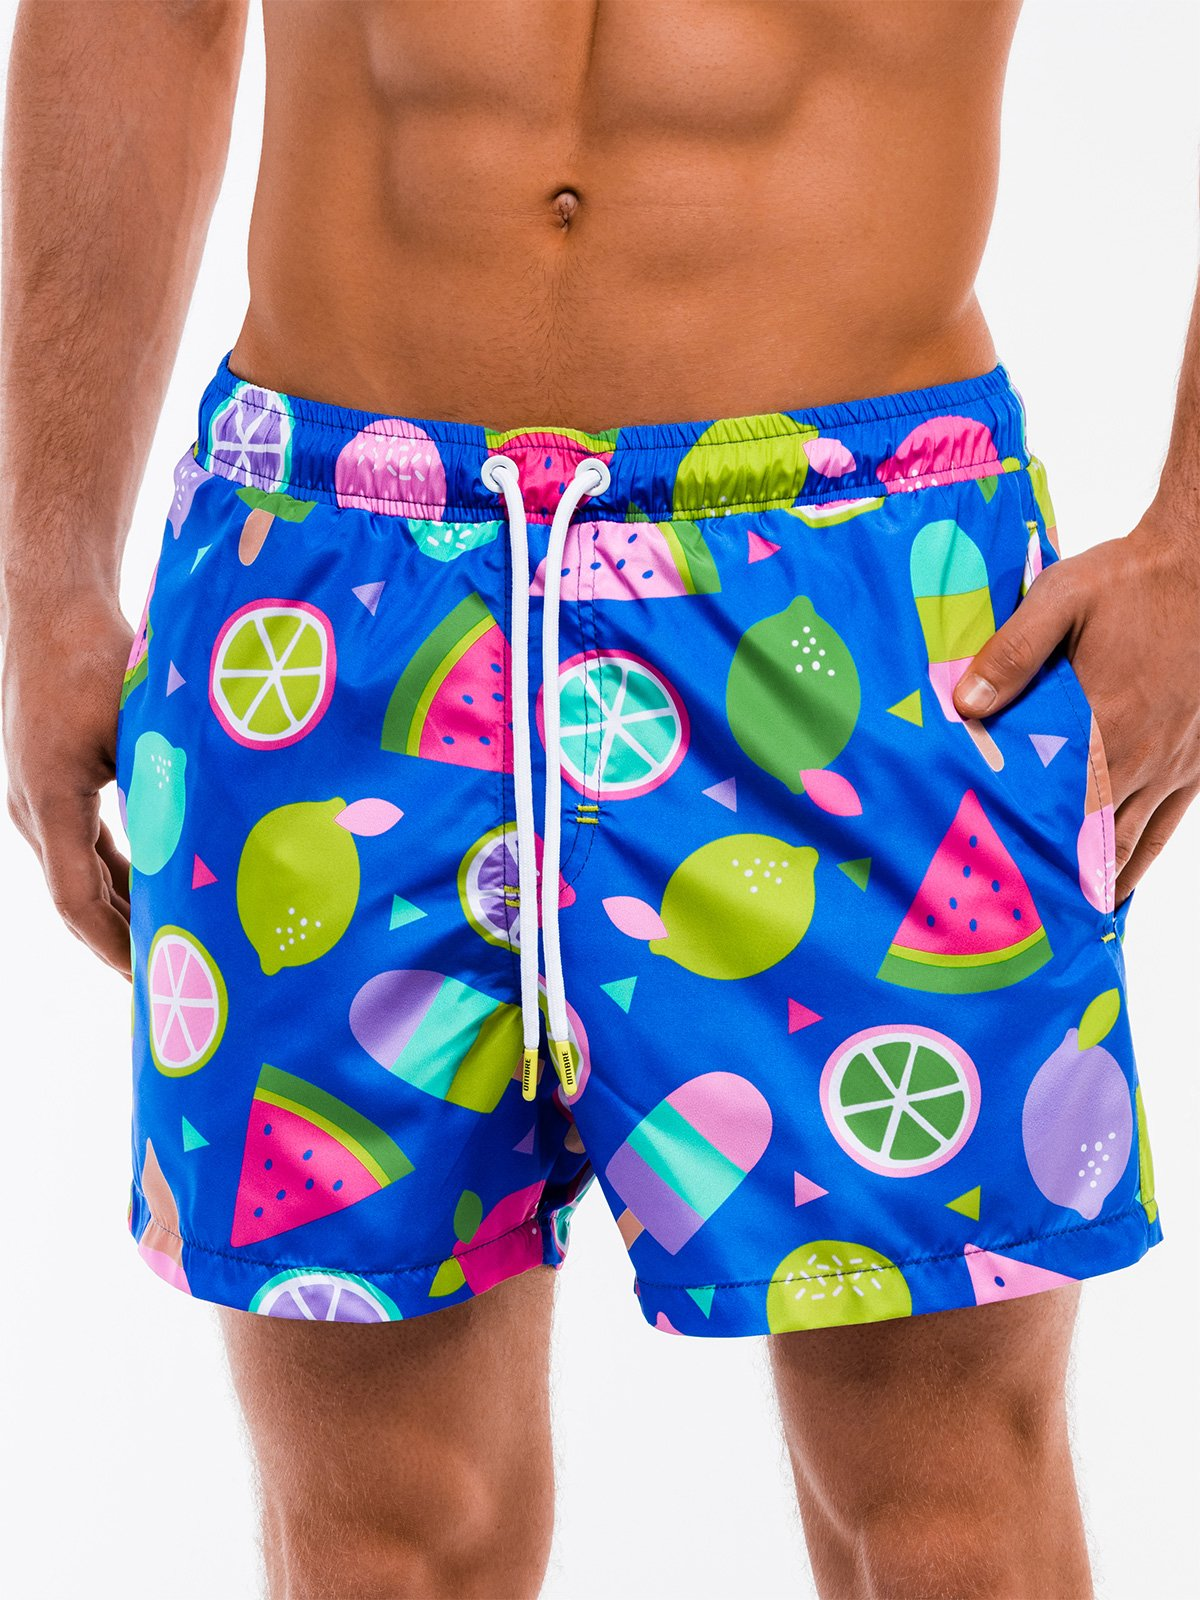 Ombre Clothing Men's swimming shorts W144